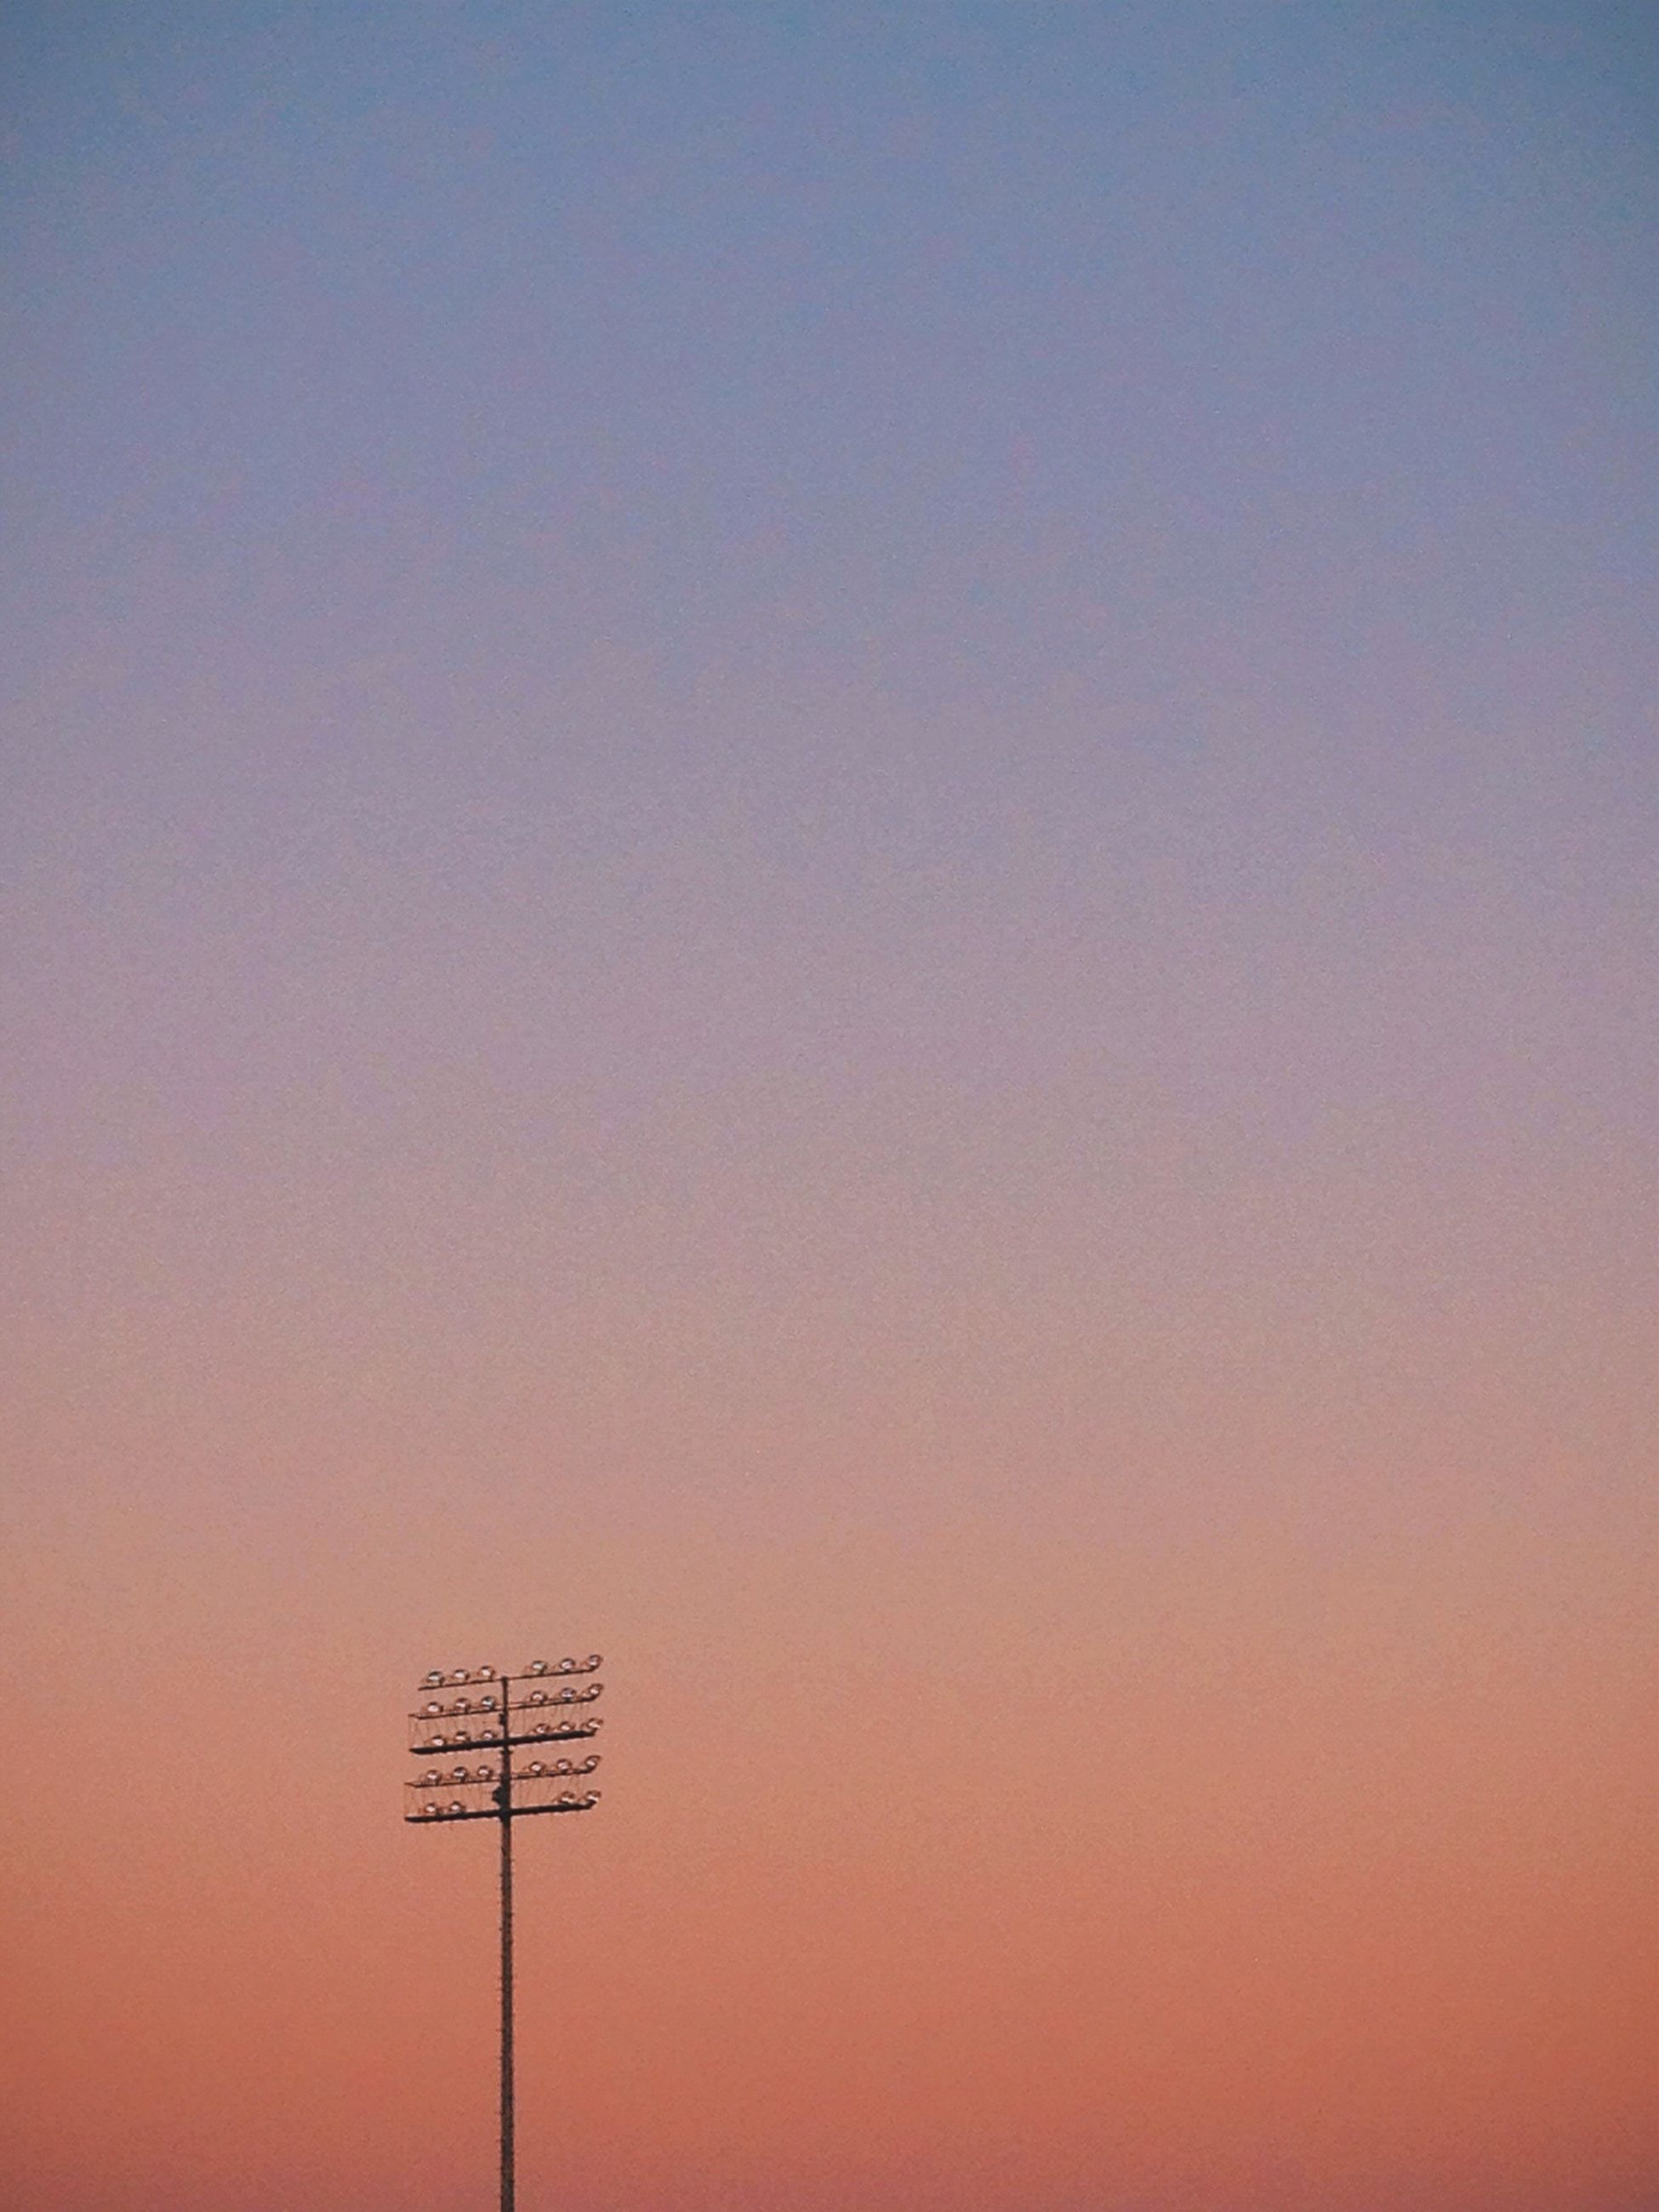 copy space, clear sky, sunset, low angle view, orange color, outdoors, no people, silhouette, nature, technology, sky, communication, high section, tranquility, beauty in nature, scenics, street light, transportation, dusk, lighting equipment